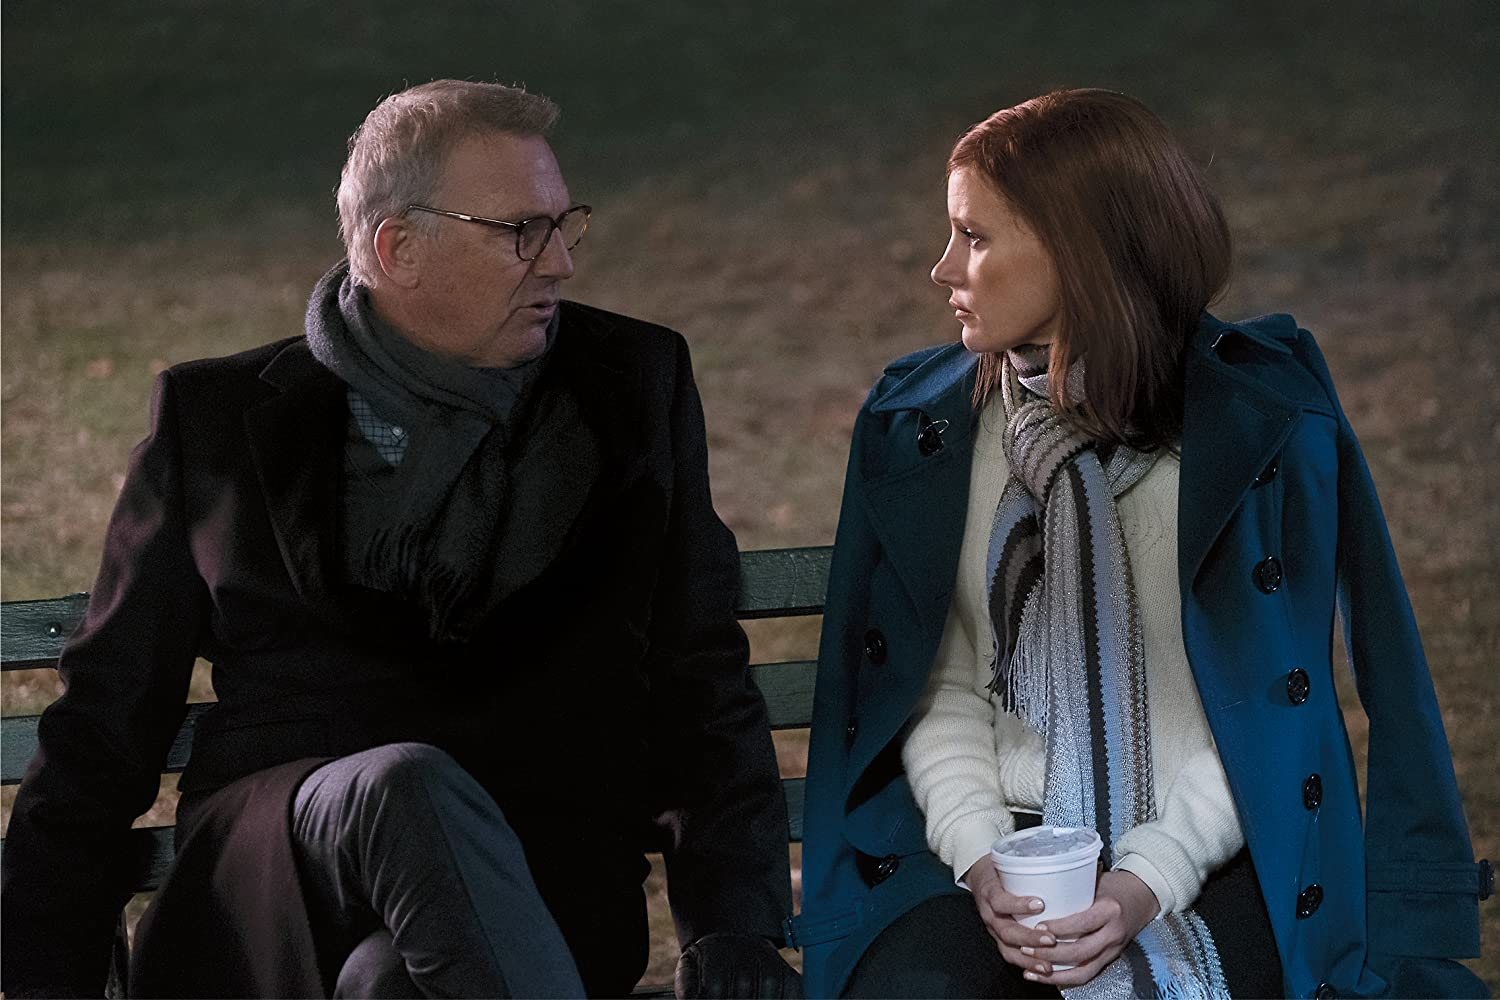 Kevin Costner and Jessica Chastain in Molly's Game (2017)